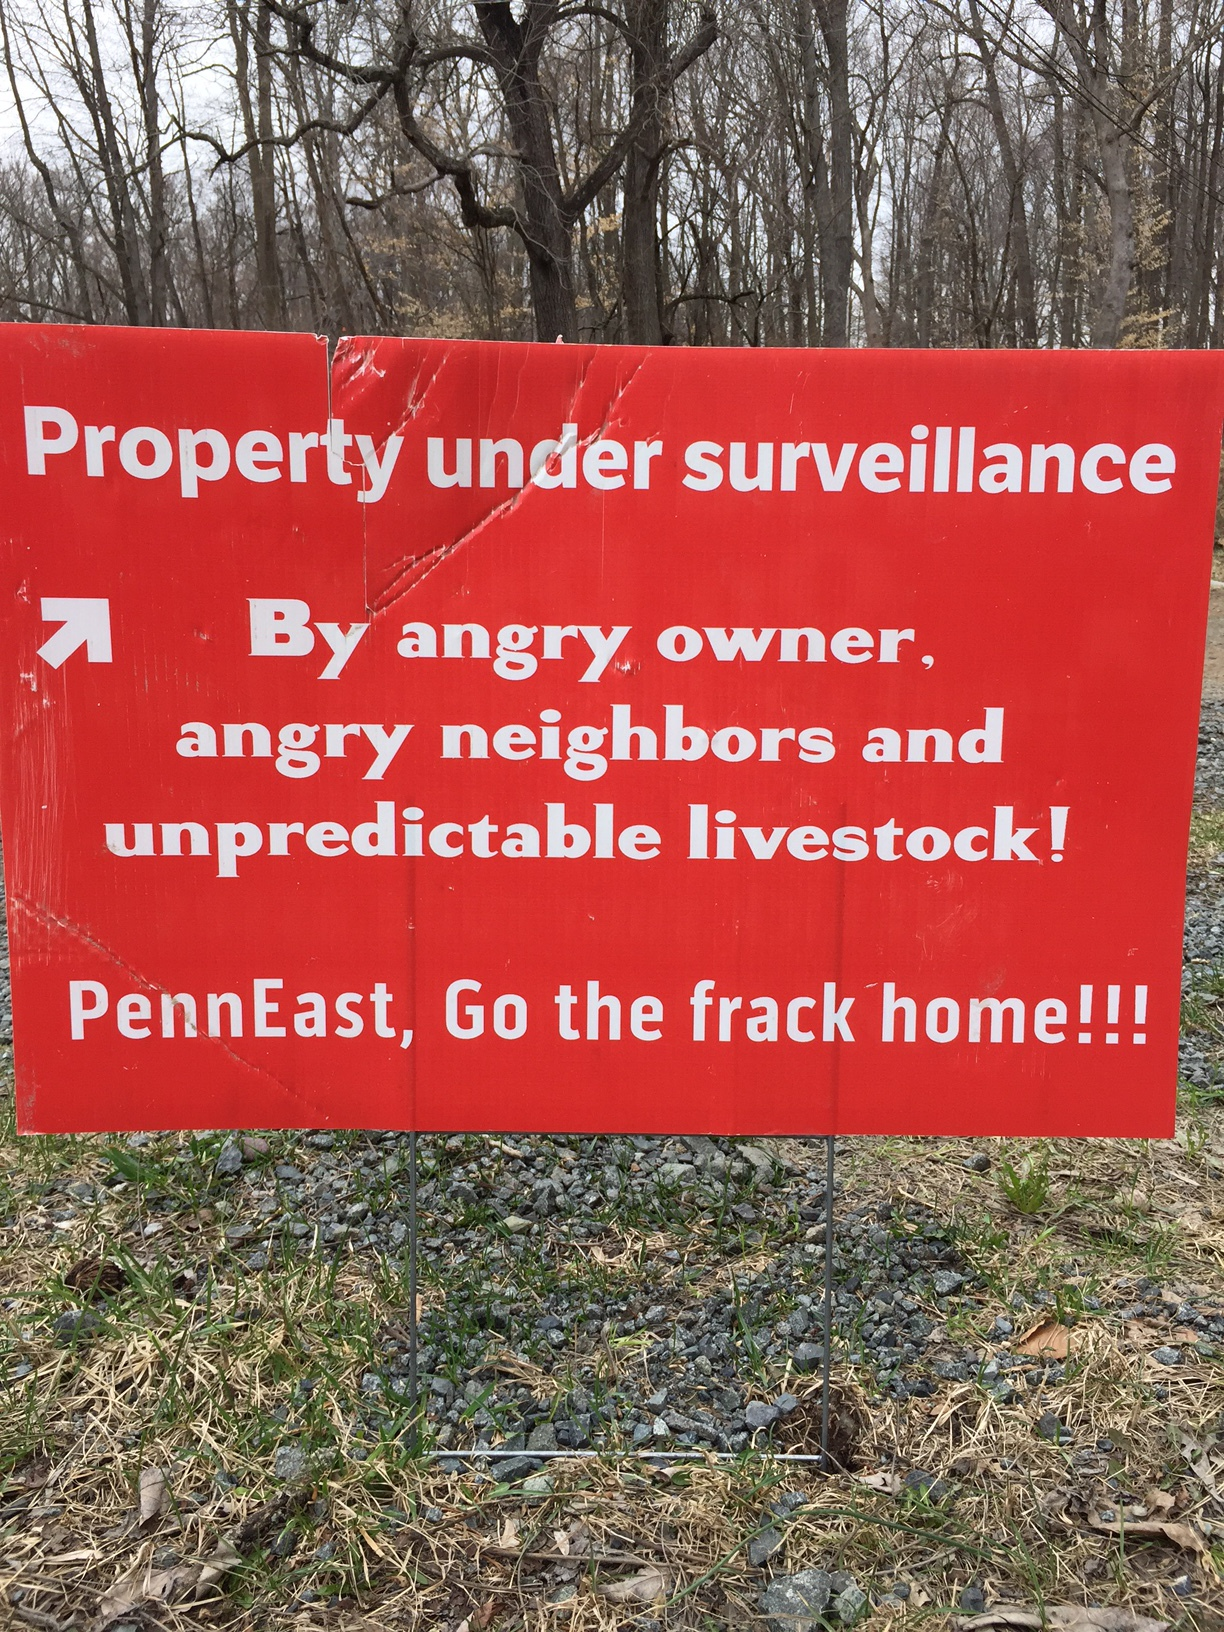 PennEast, Western Land Services